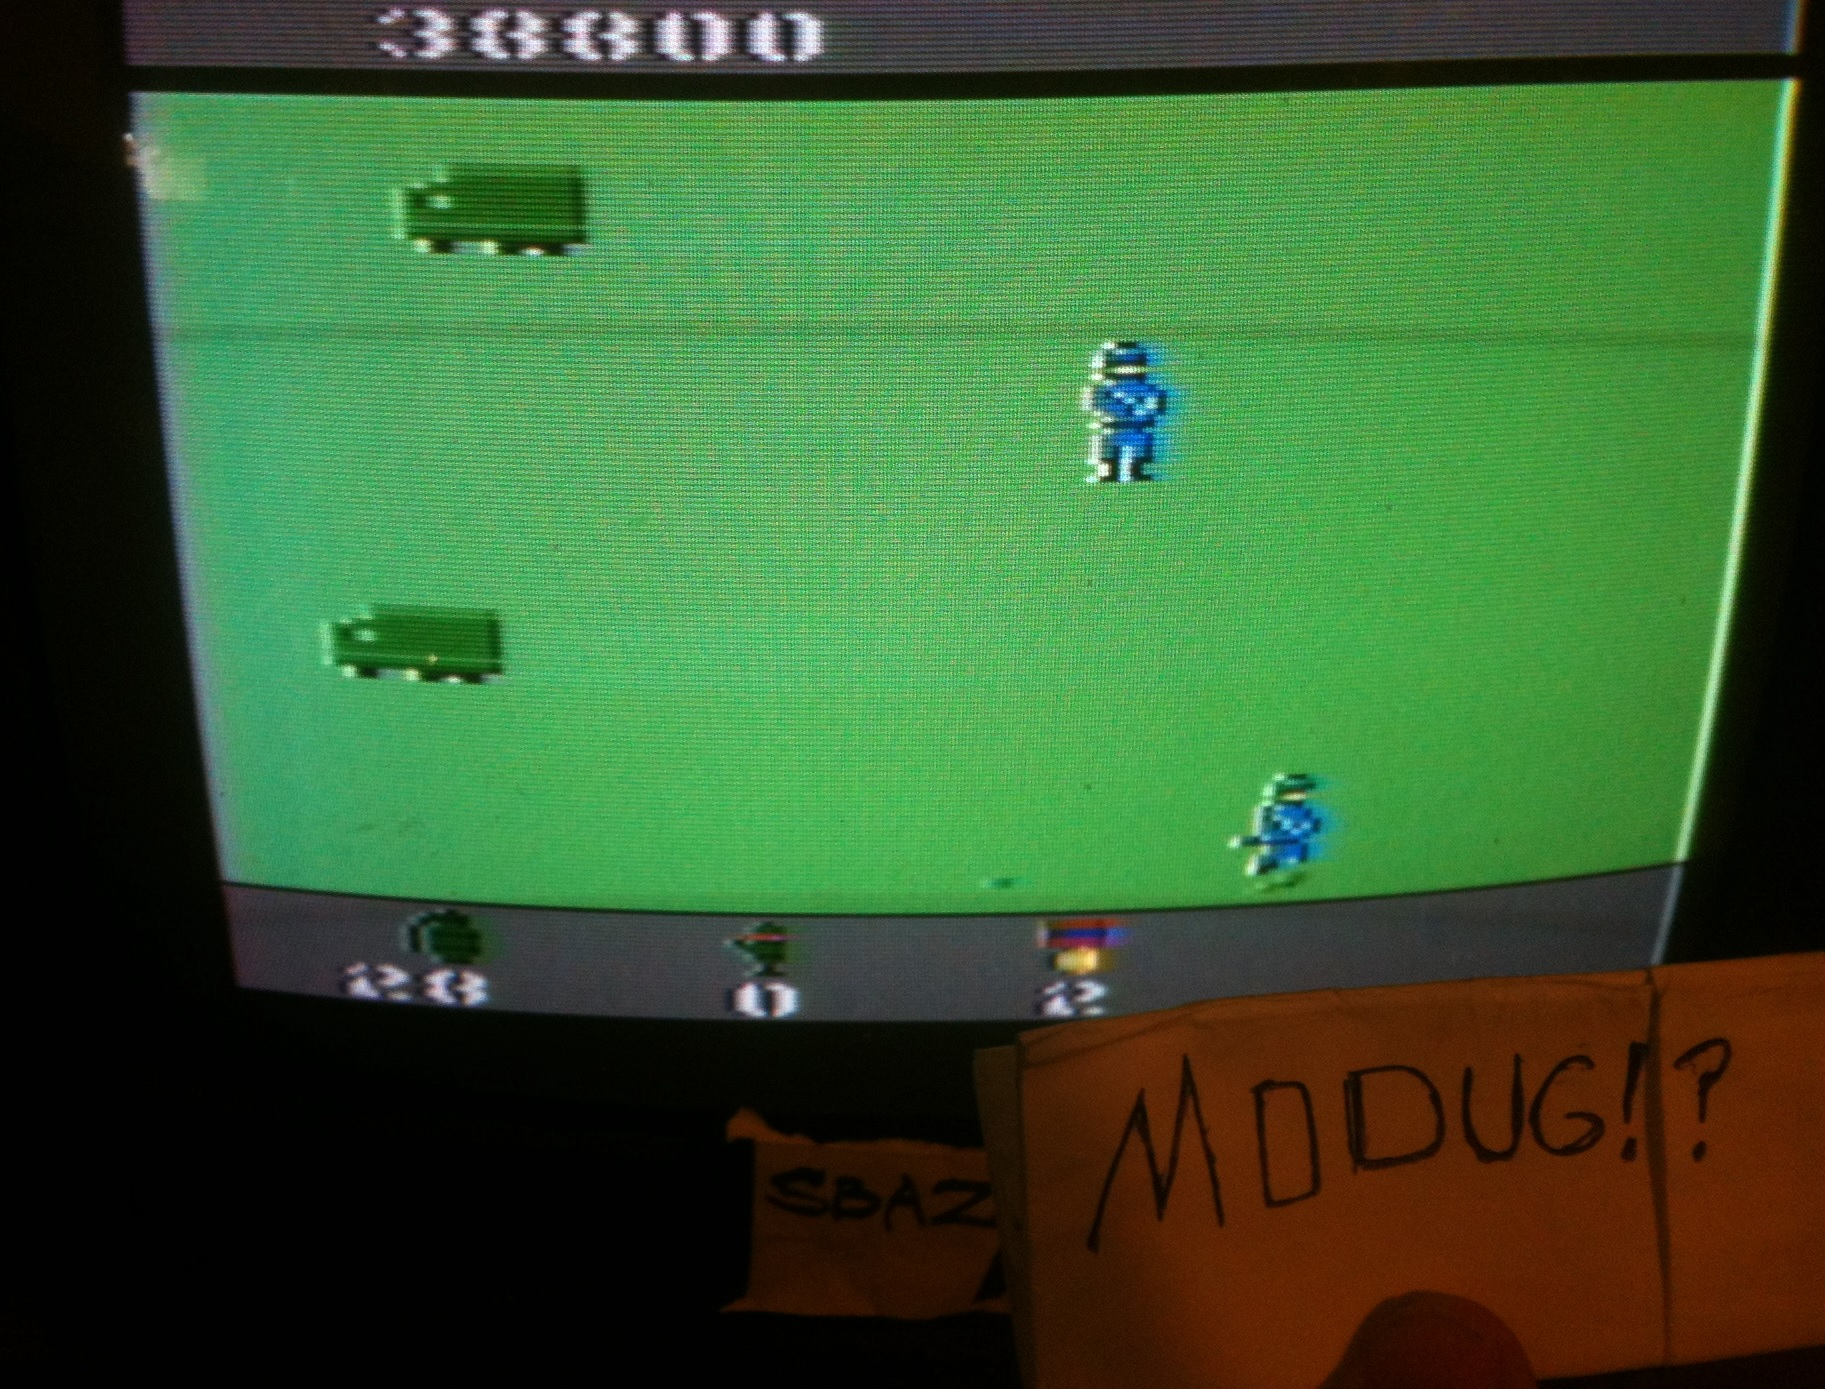 MODUG: Commando (Atari 2600) 38,800 points on 2014-04-09 16:24:33